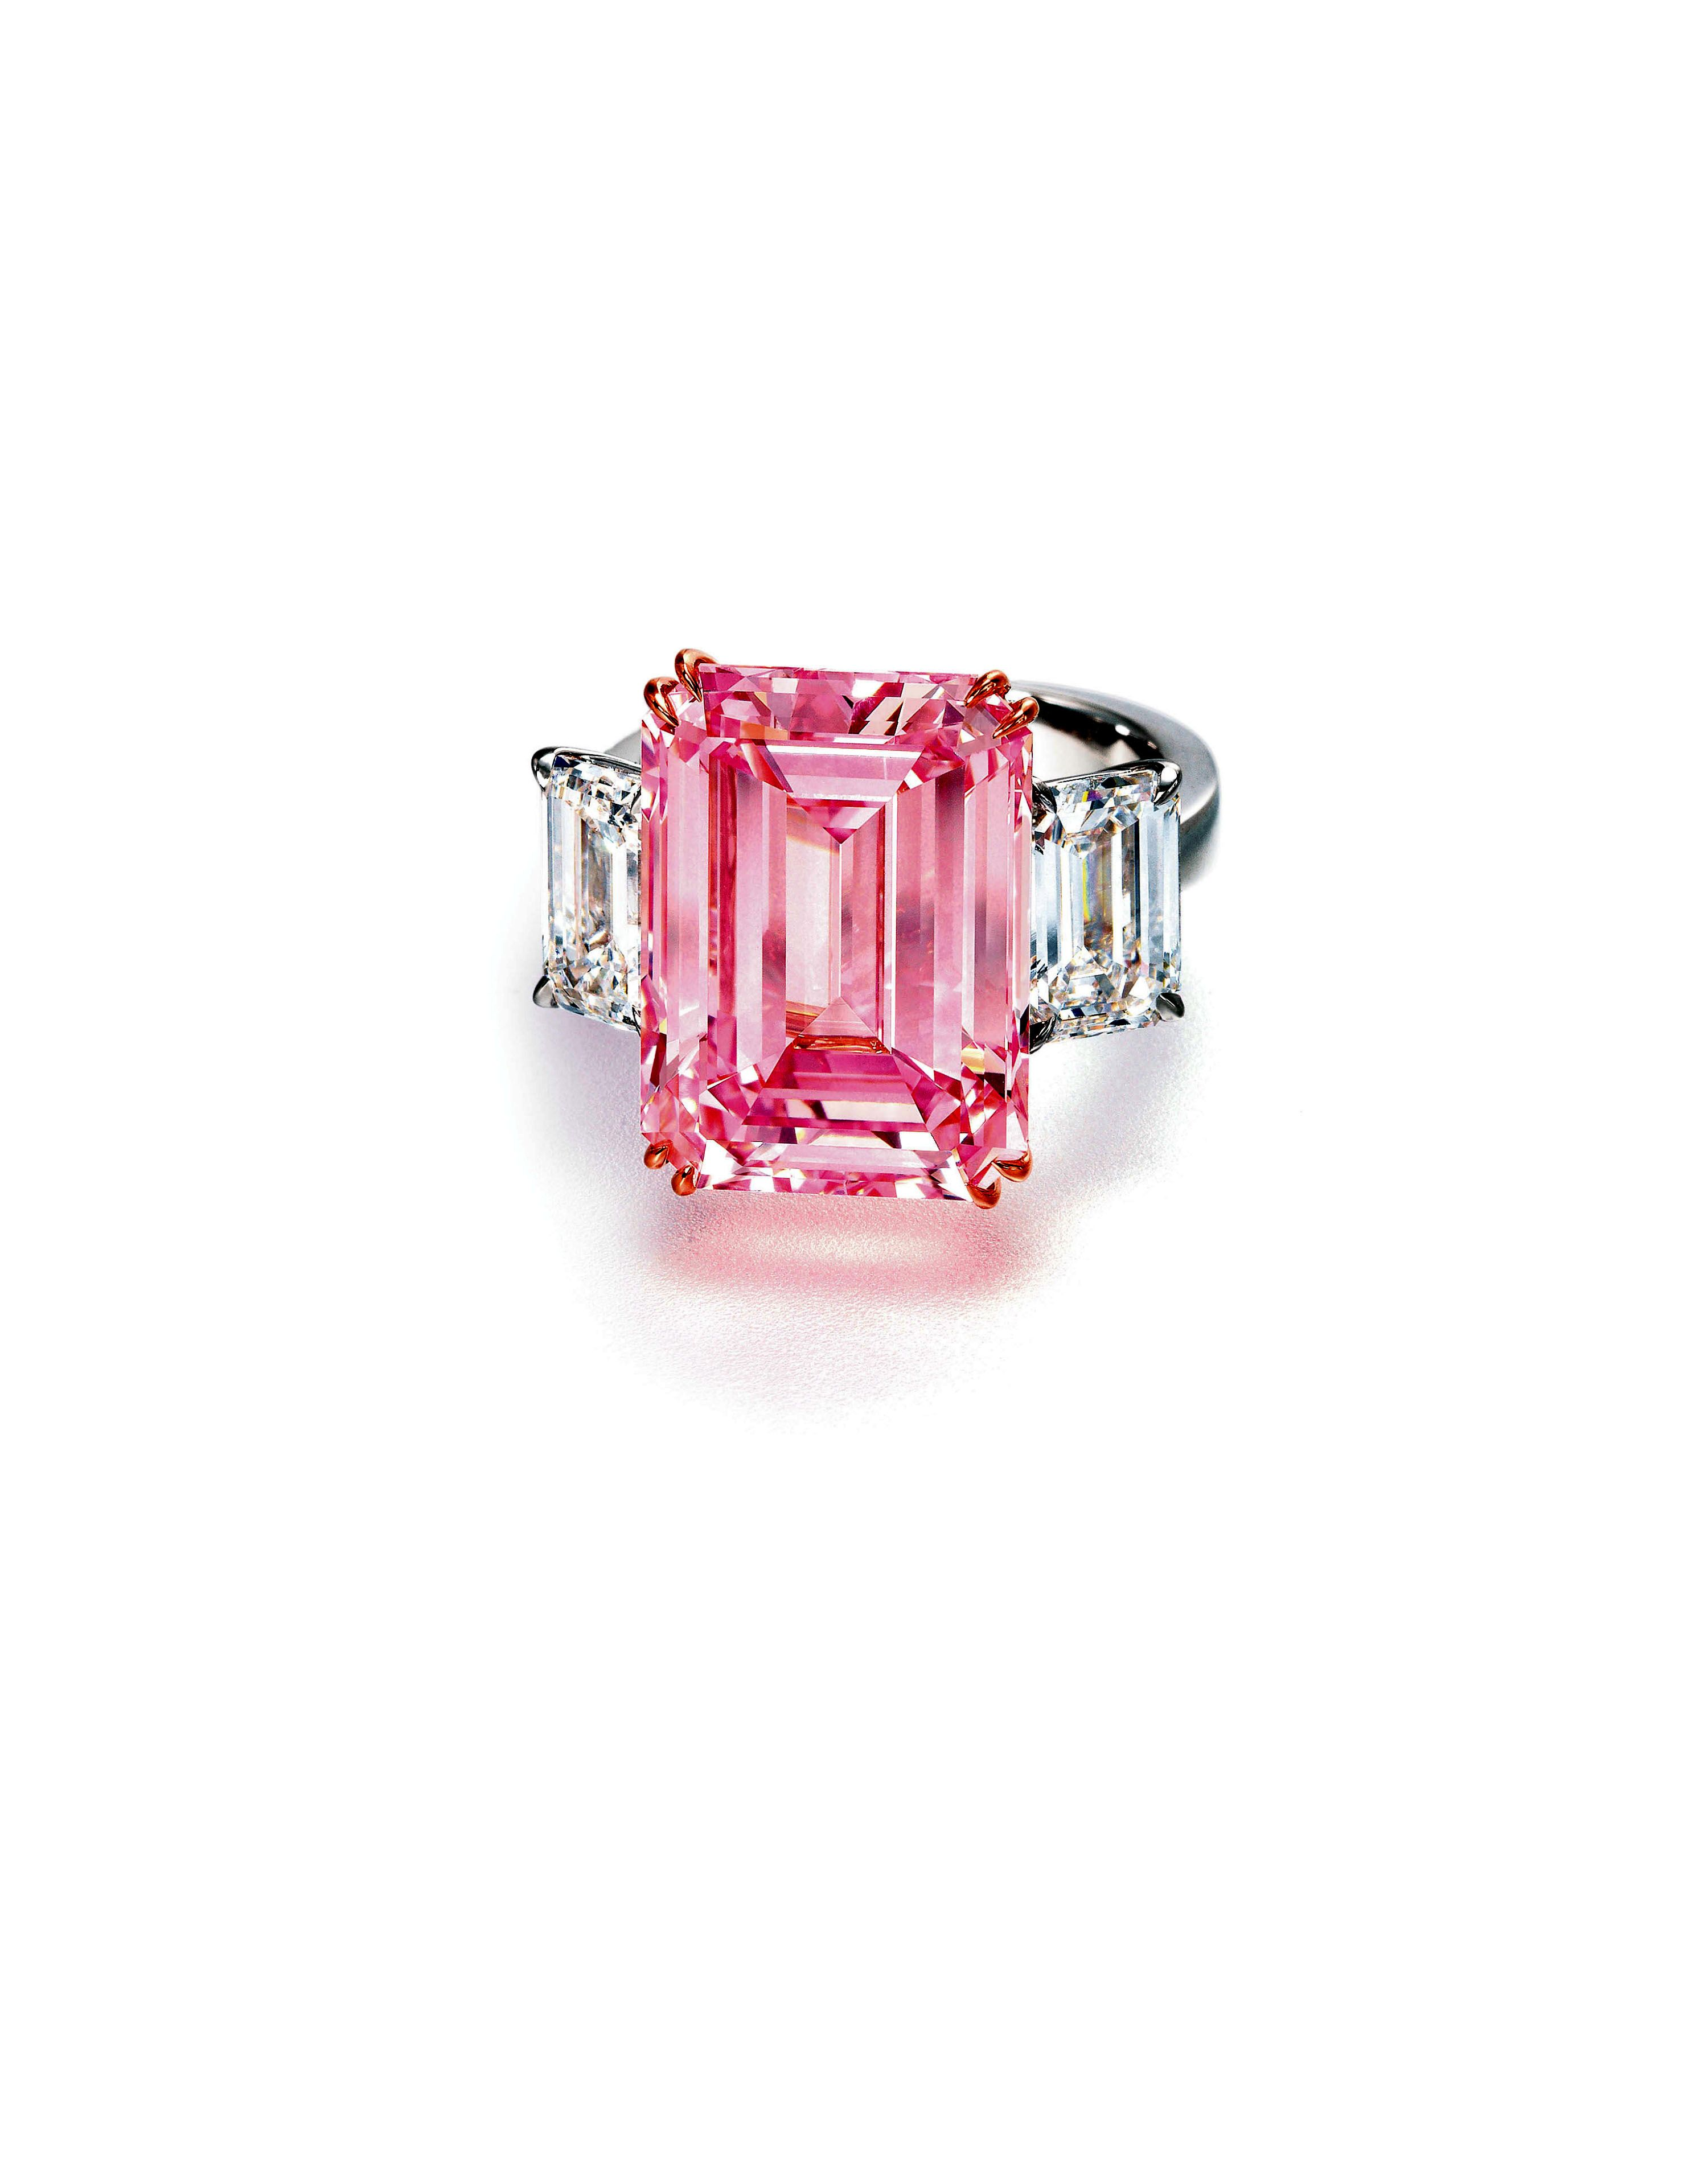 Pink Diamond\'s $45.6 Million Tops Prices Before HK Sale | Jewelry ...